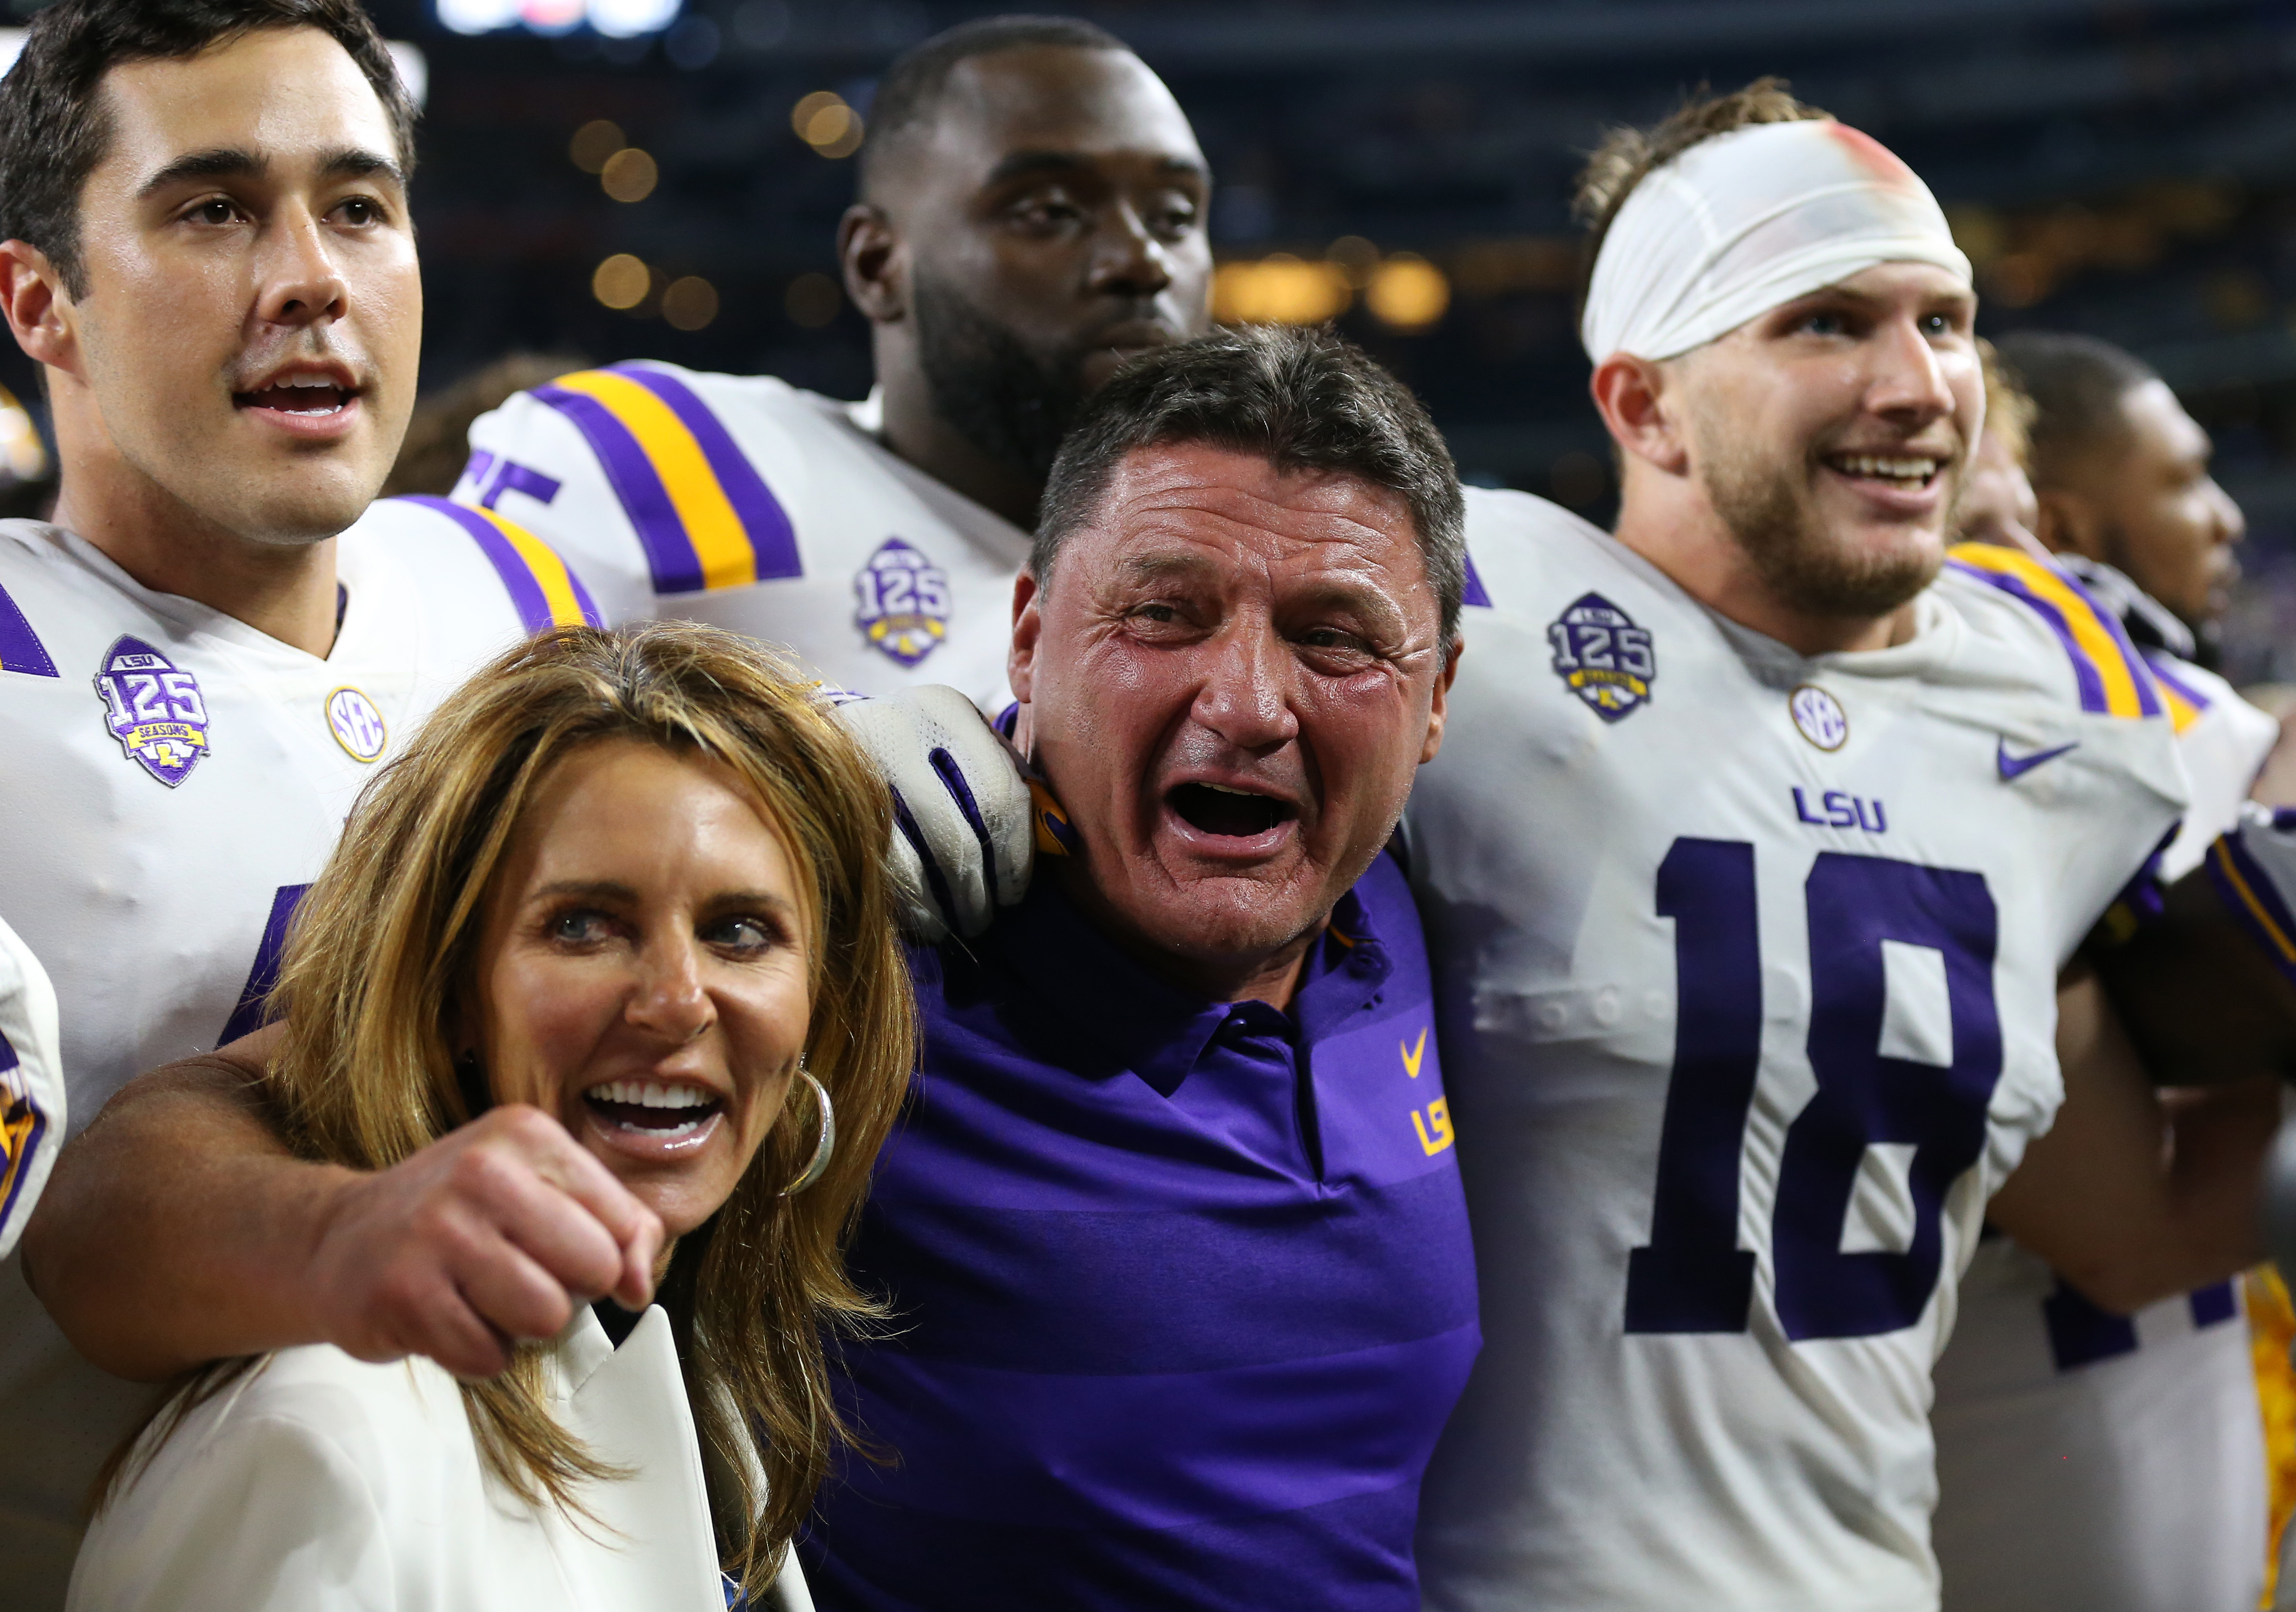 Sep 2, 2018; Arlington, TX, USA; LSU Tigers head coach Ed Orgeron celebrates with his team after a victory against the Miami Hurricanes at AT&T Stadium. Mandatory Credit: Matthew Emmons-USA TODAY Sports